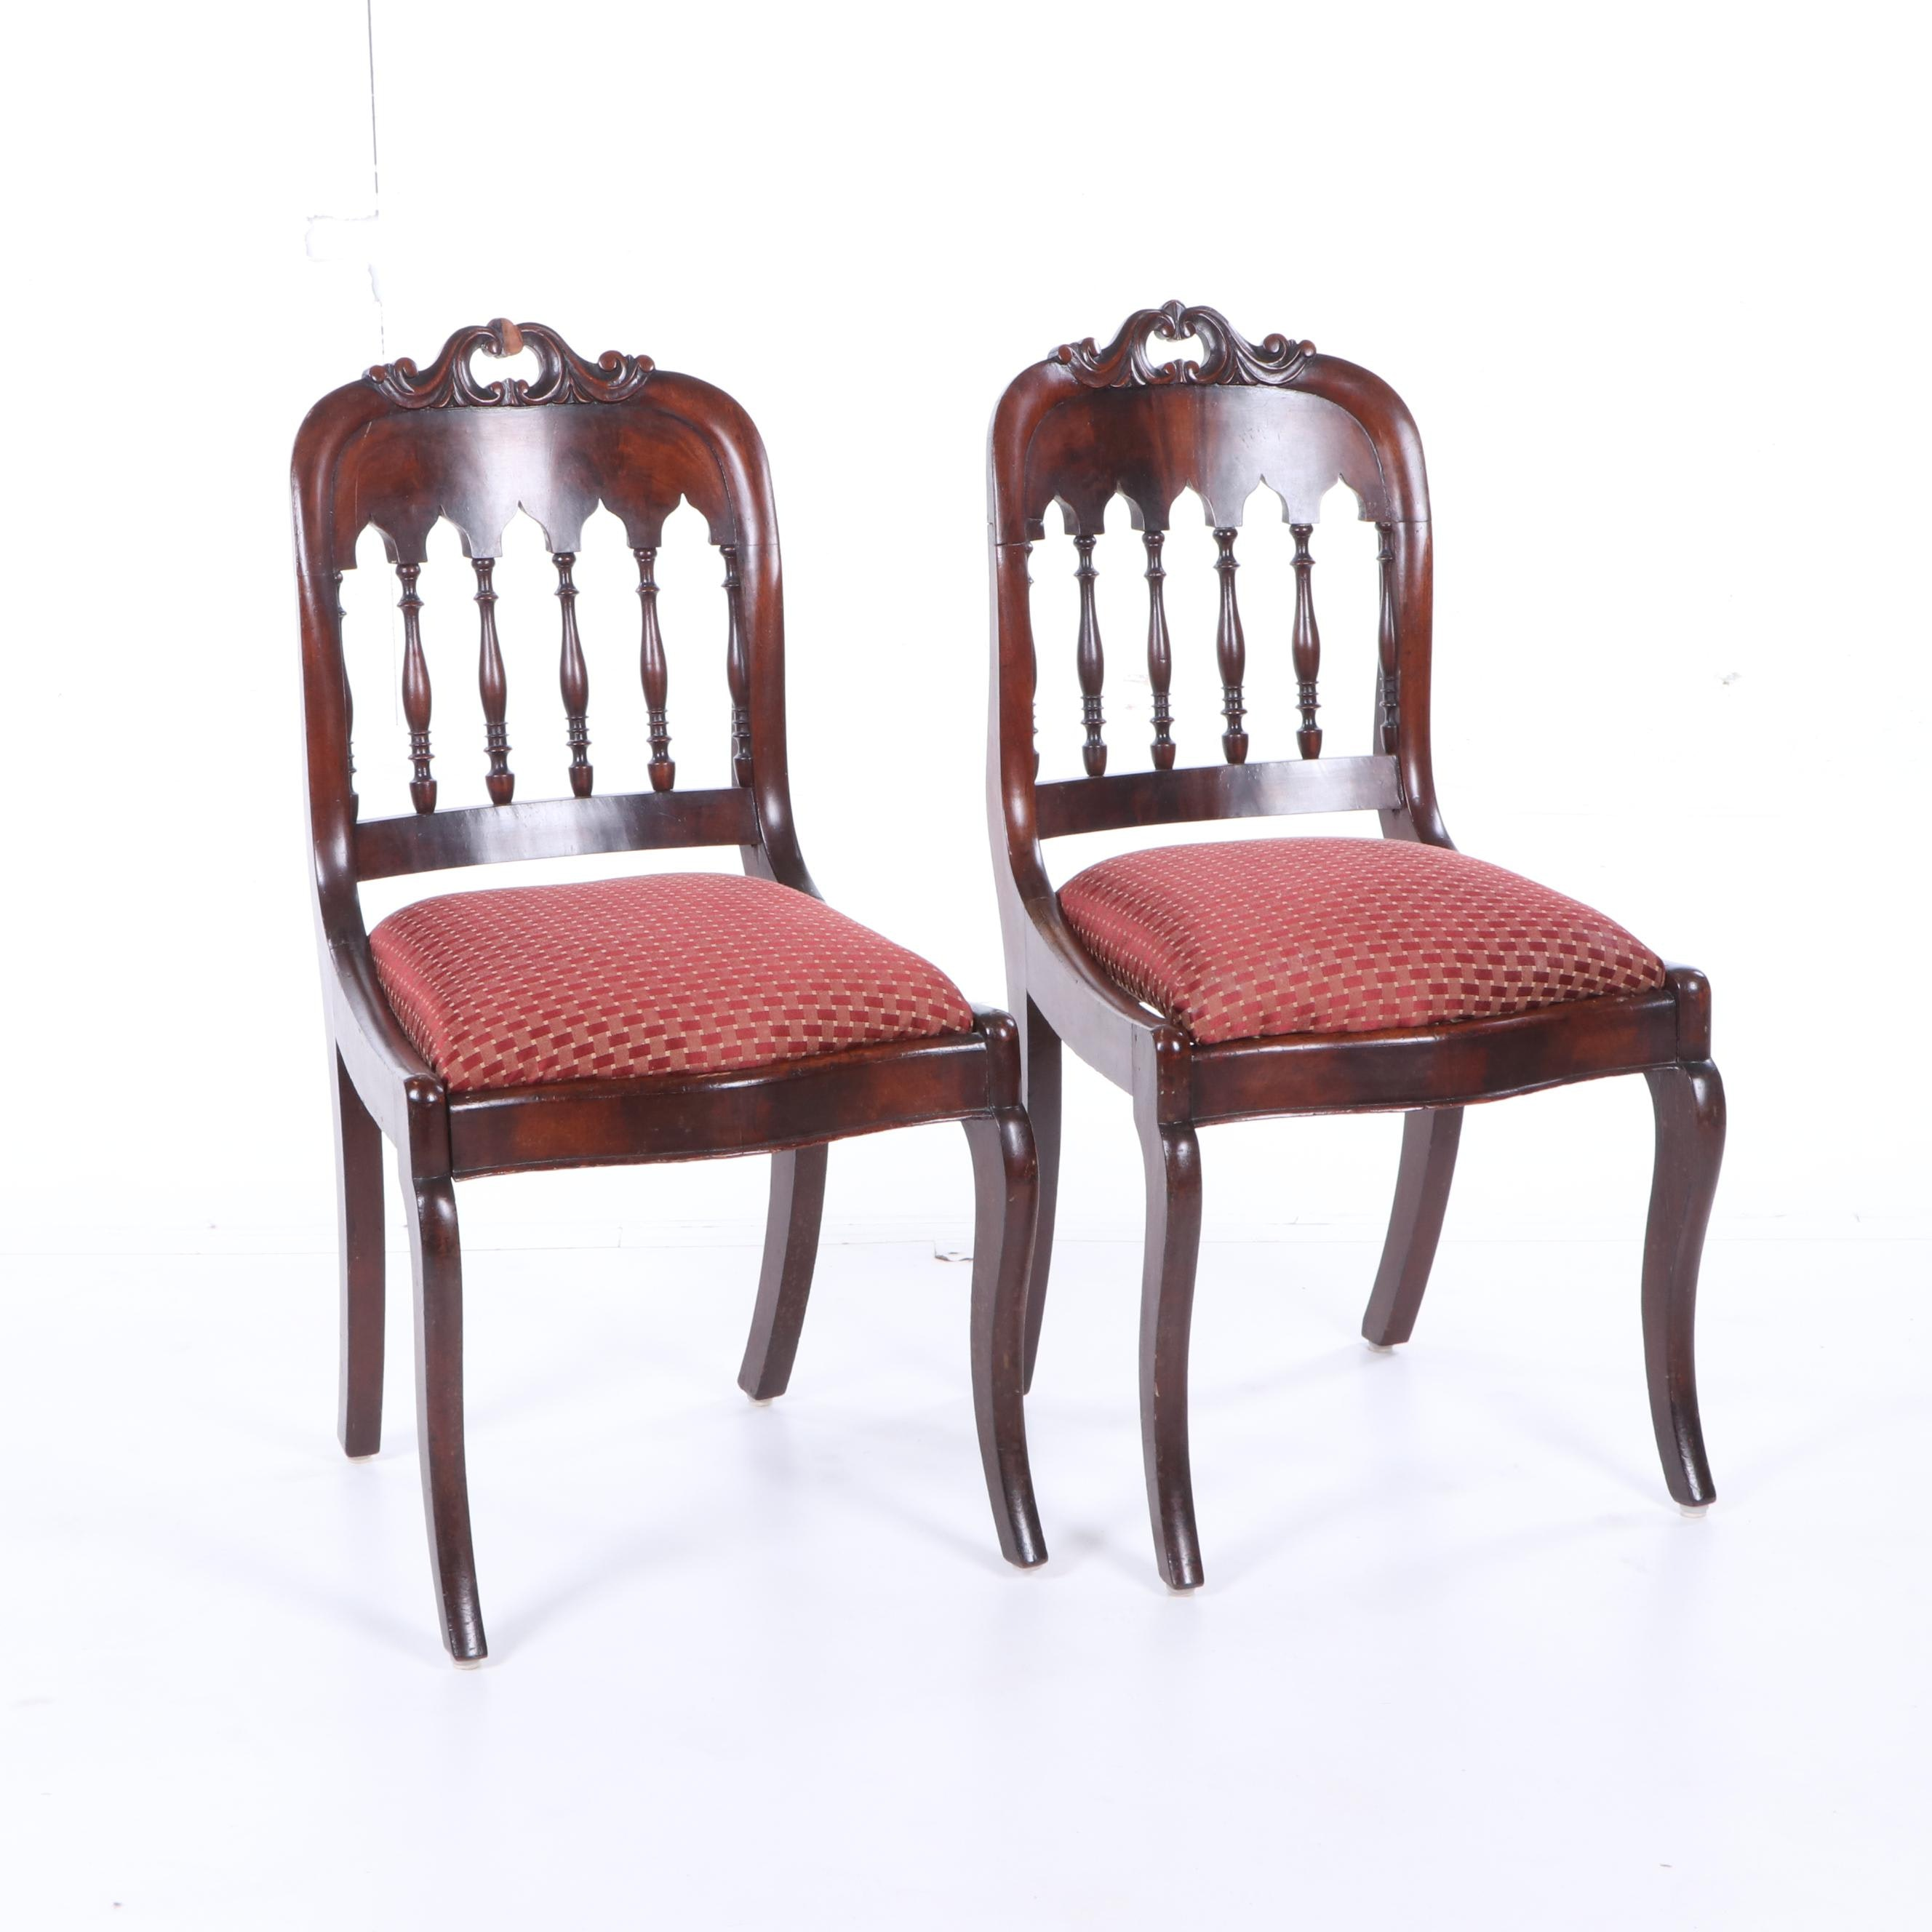 Victorian Mahogany Side Chairs, Mid 19th Century